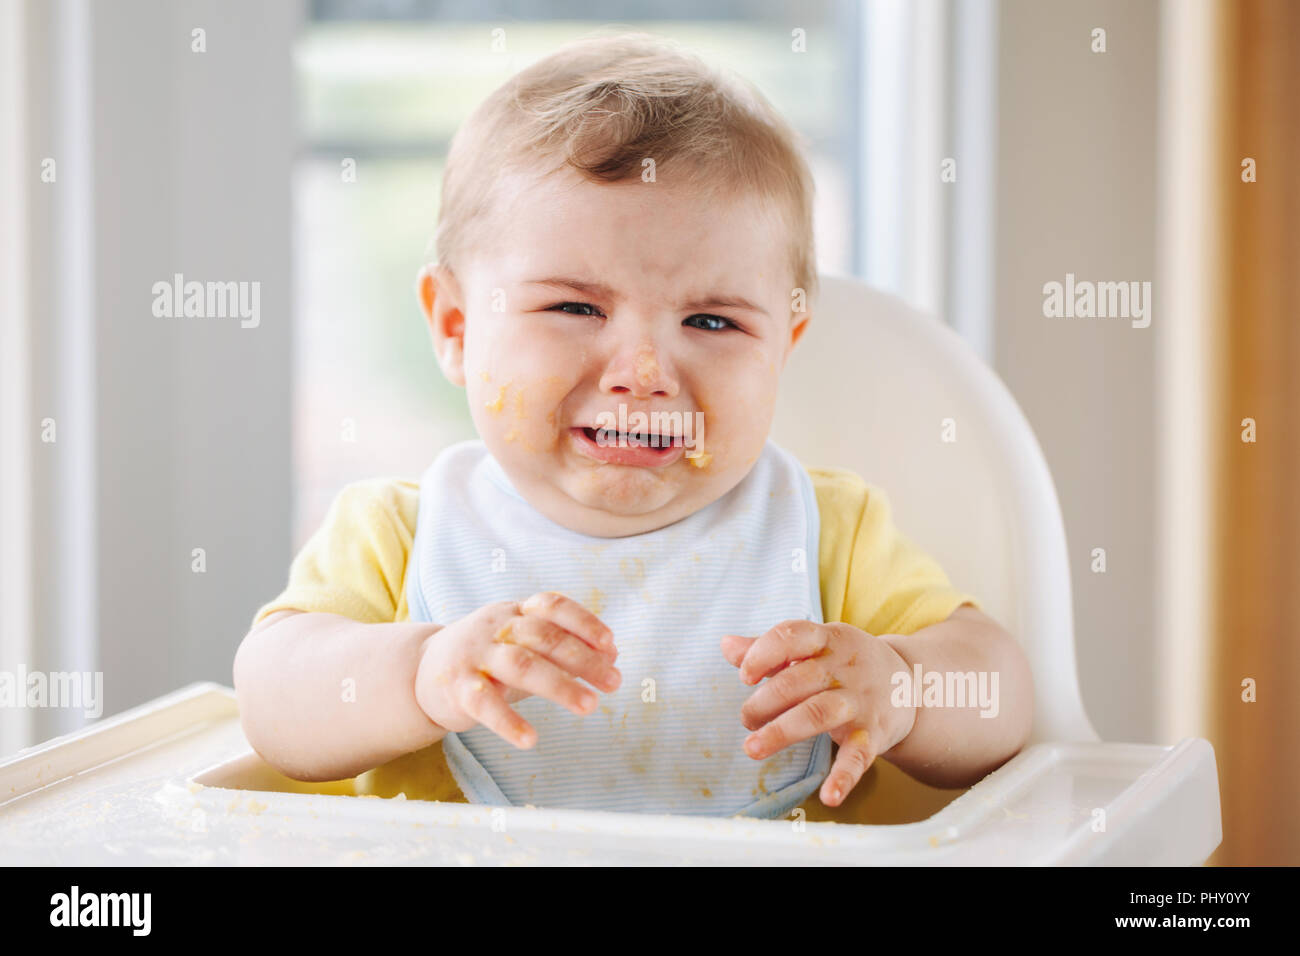 7009a61c78ec Portrait of cute crying Caucasian child boy with dirty messy face sitting  in high chair after